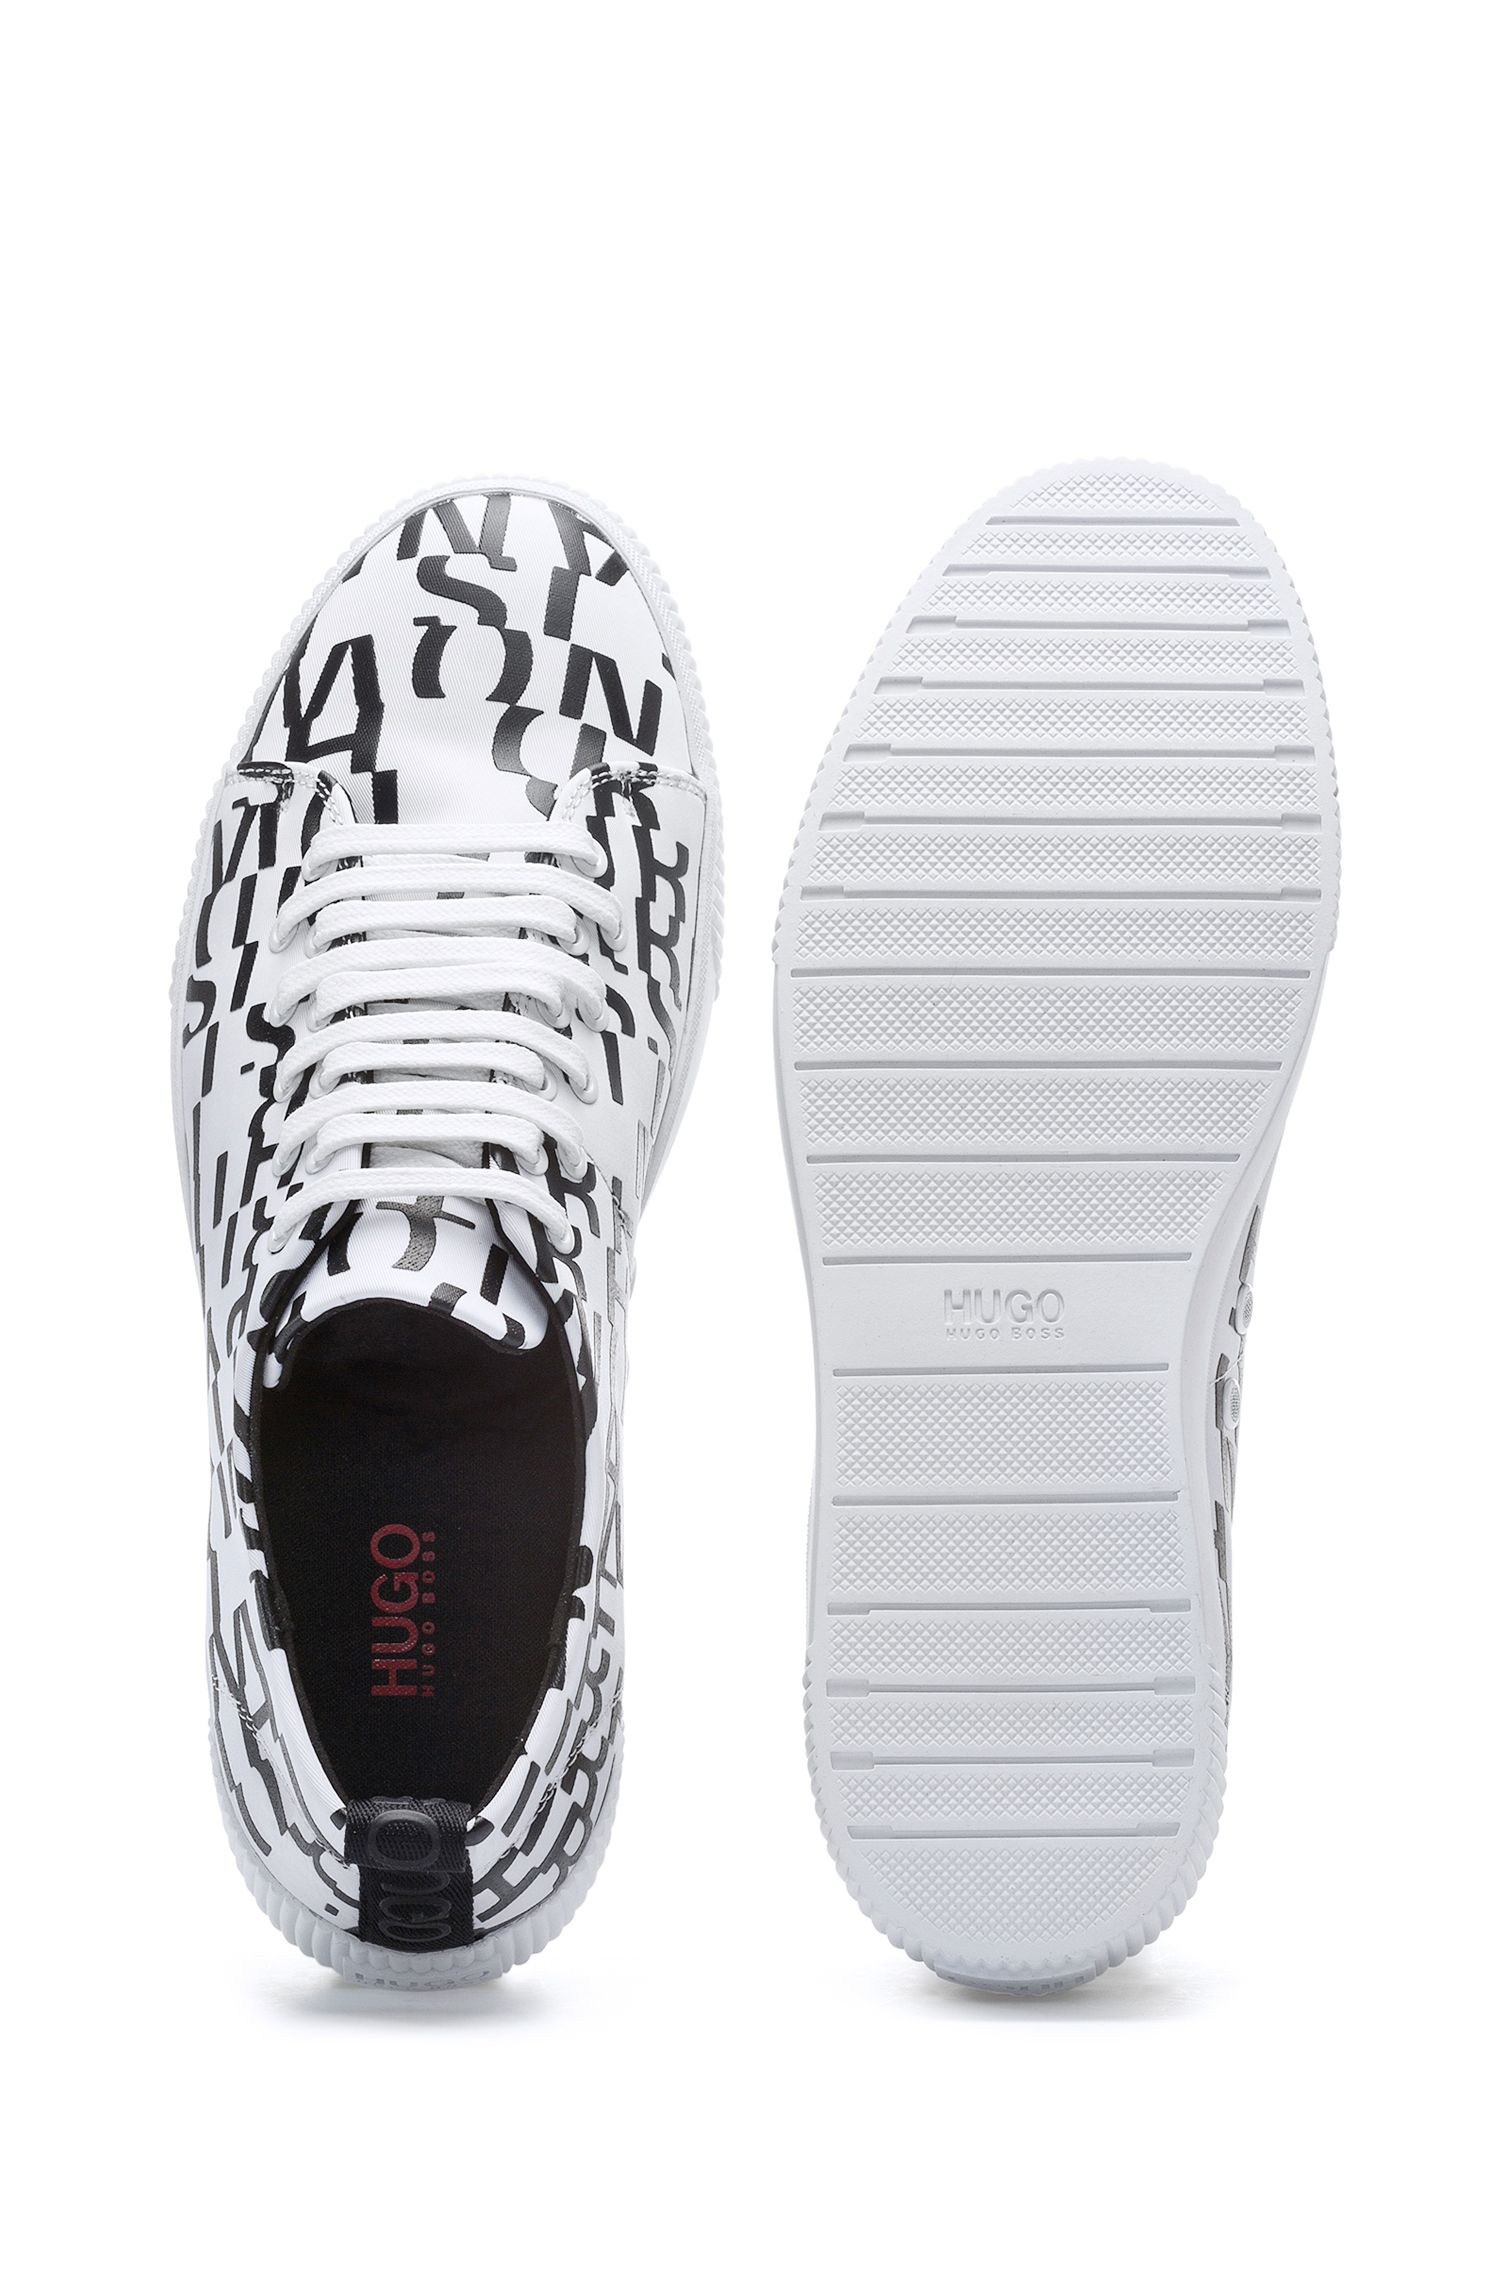 Low-top trainers with printed fabric uppers